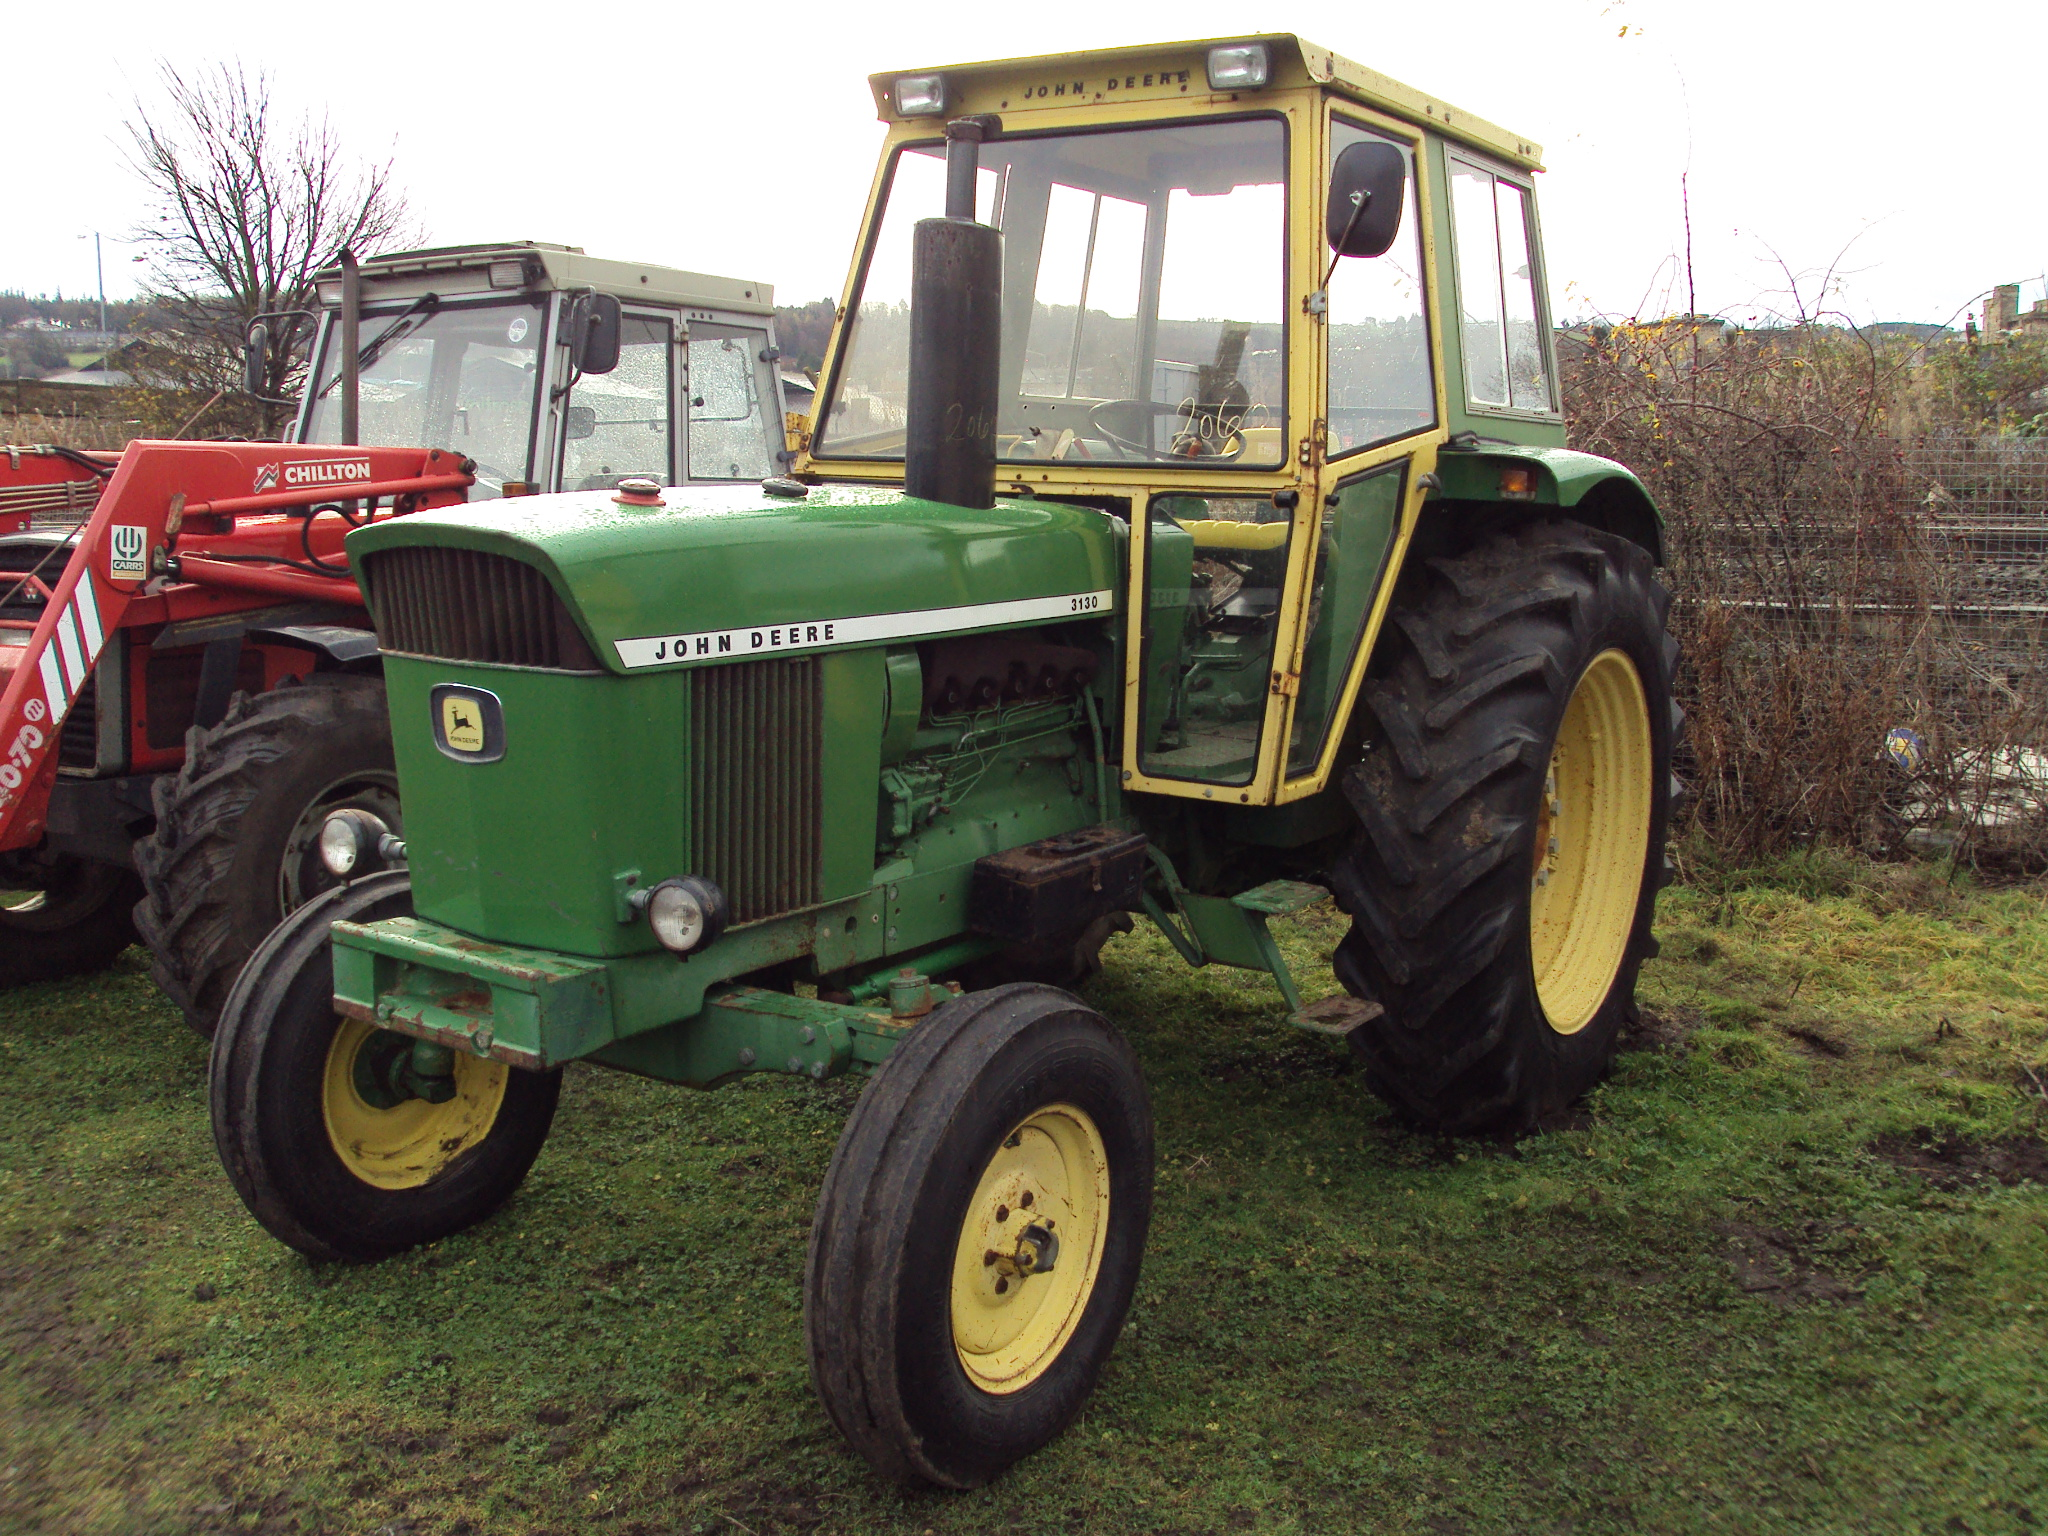 john deere 3130 - tractor & construction plant wiki - the